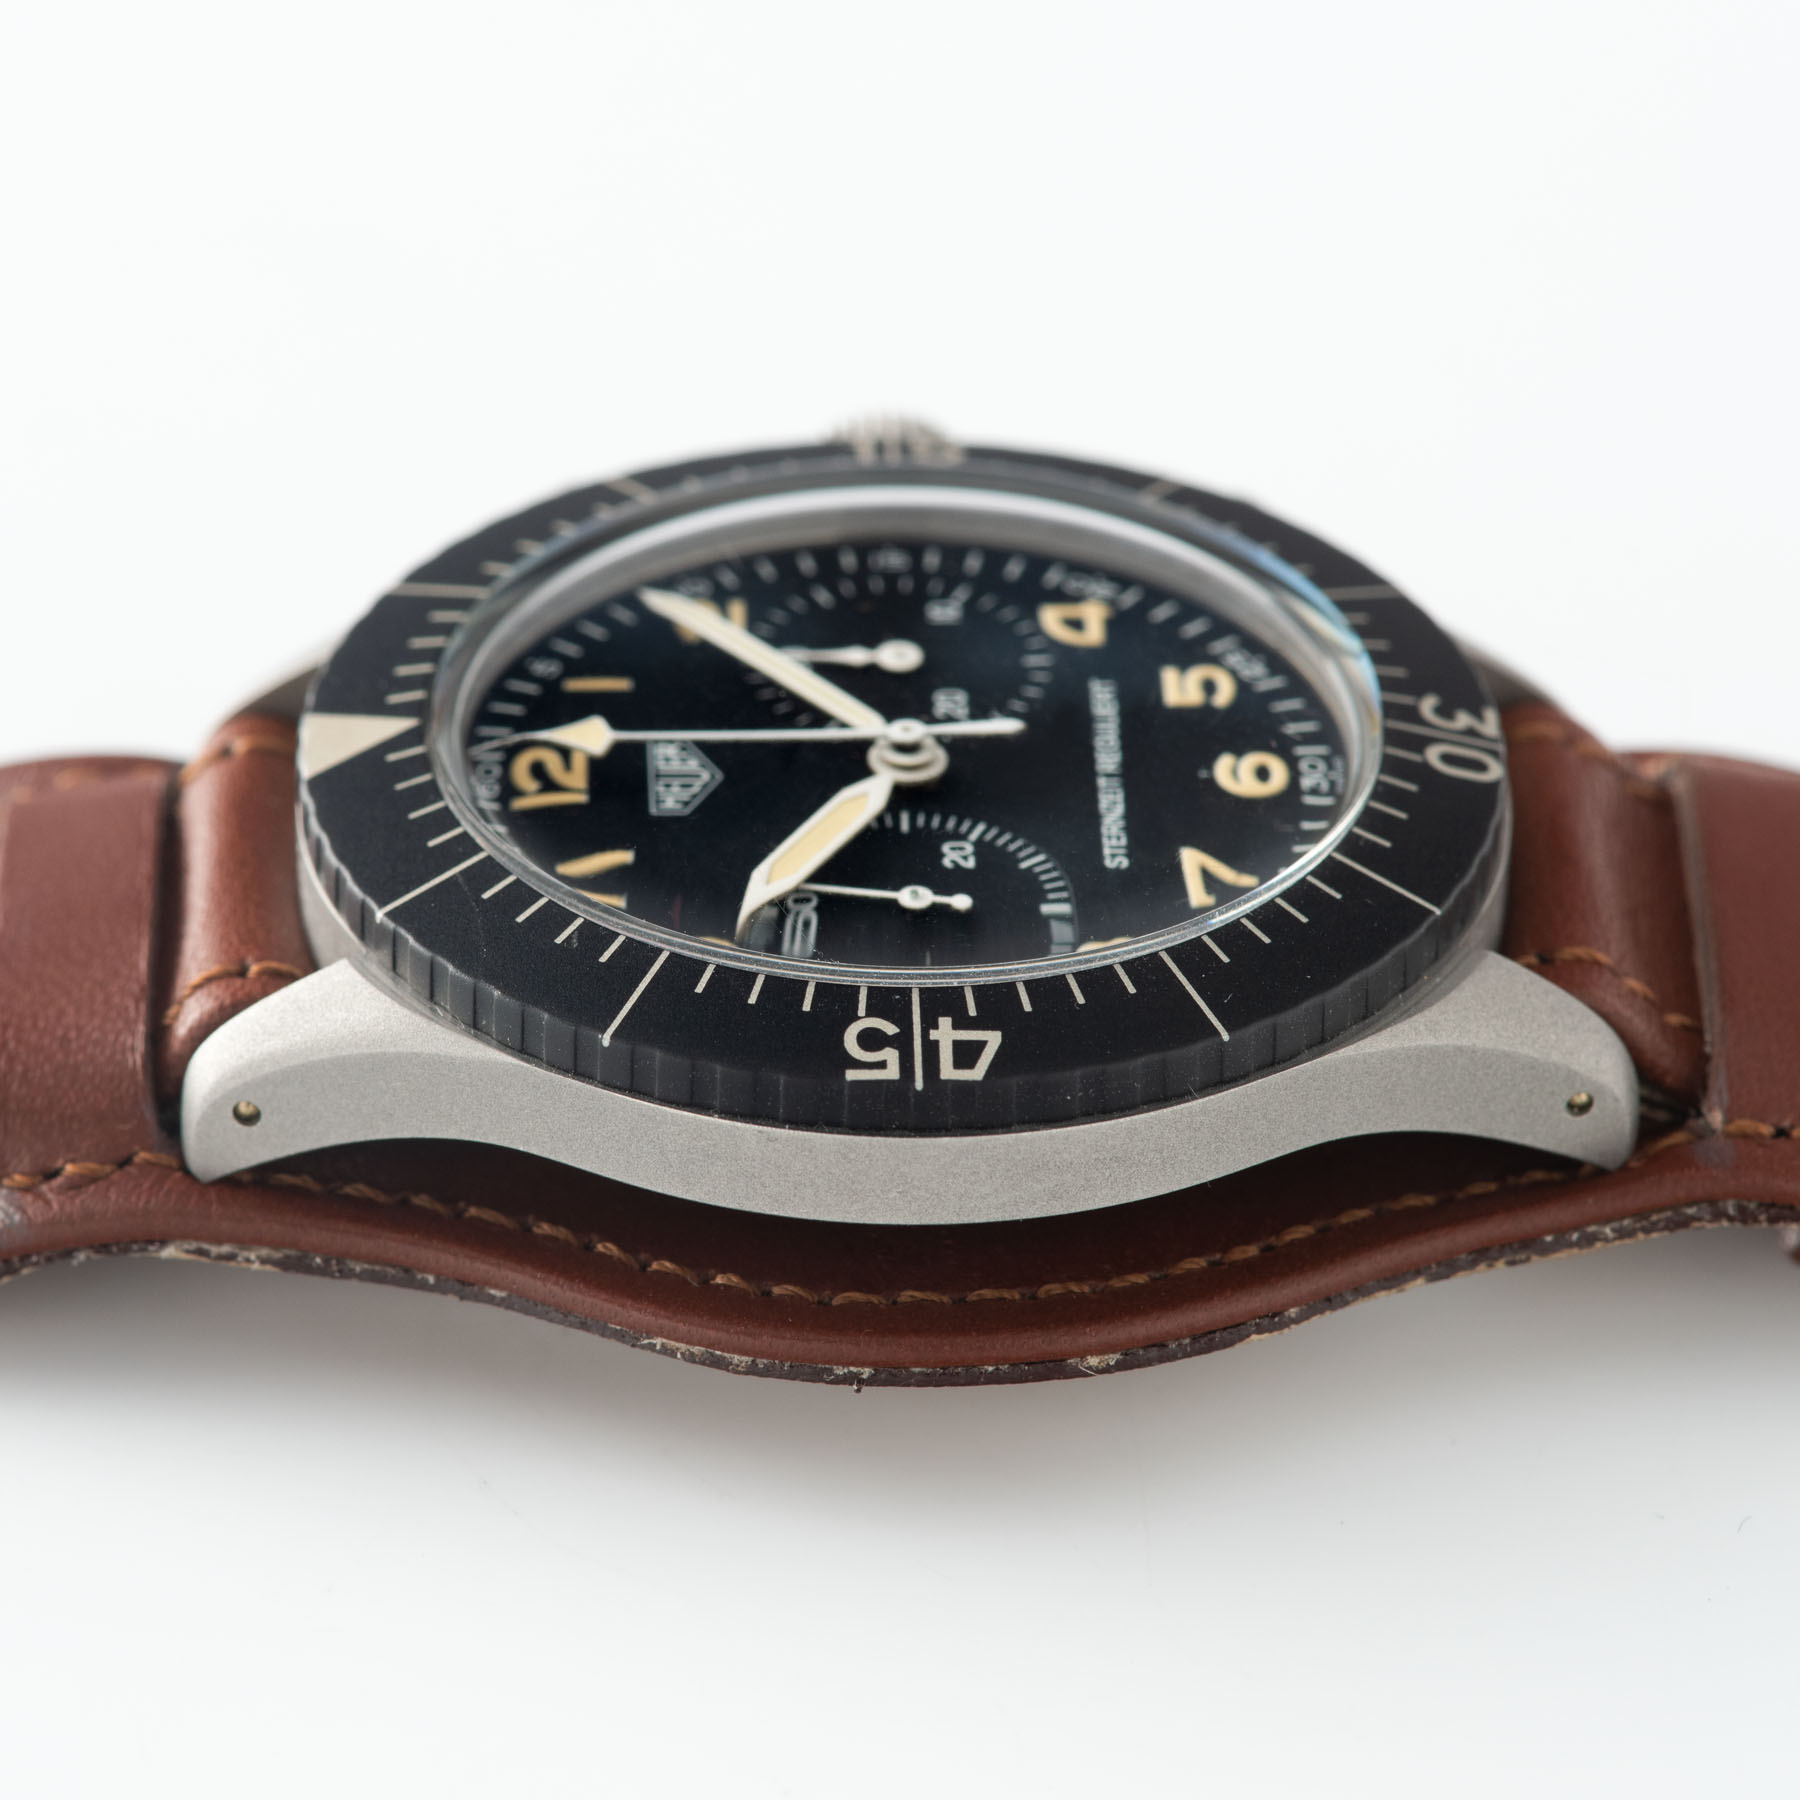 The Heuer Bundeswehr 1550SG Chronographs – More Than A Famous Strap